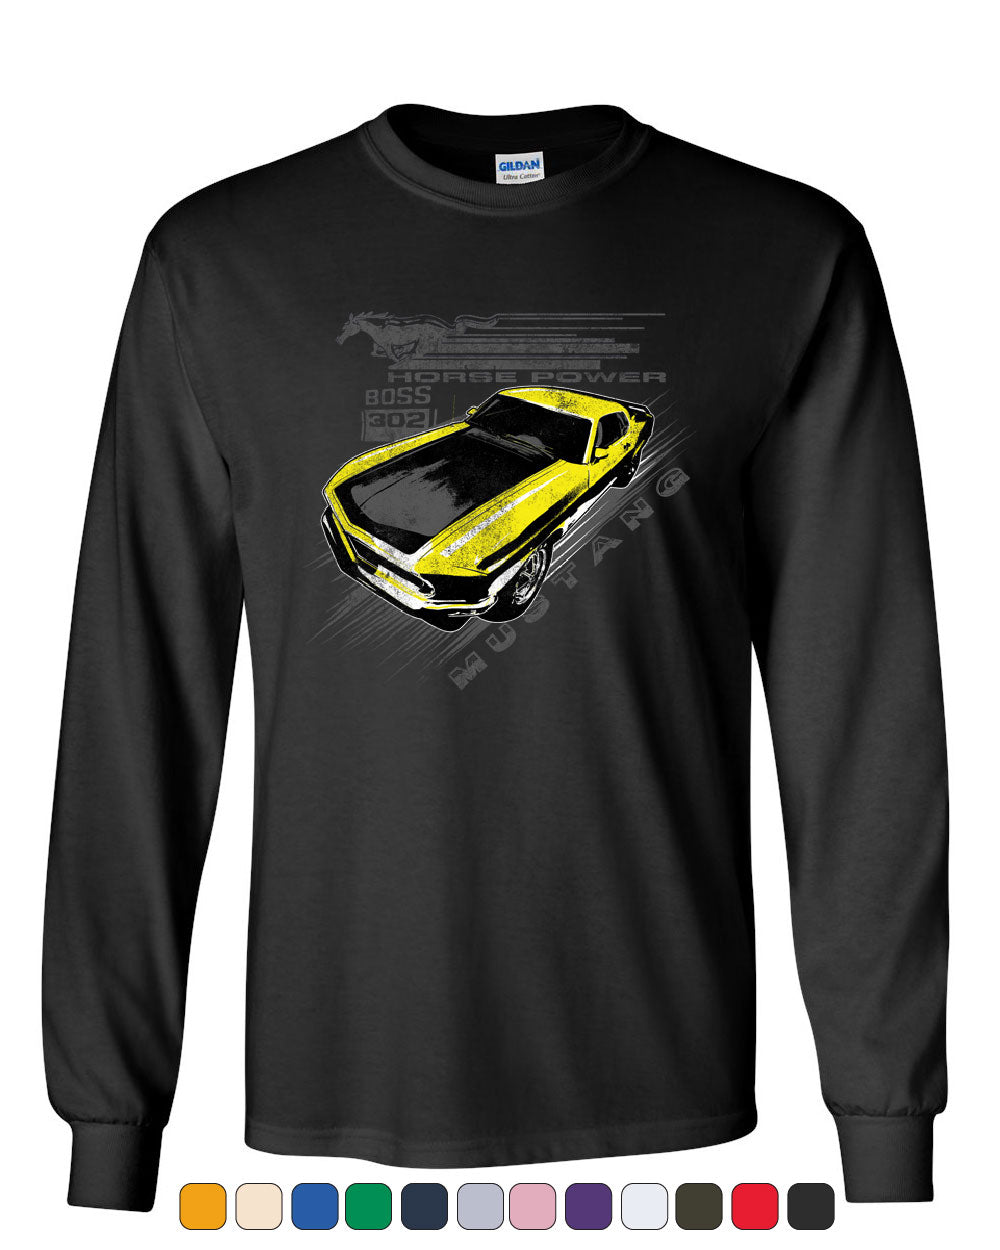 75a6c9c5 Ford Mustang Yellow Boss 302 Long Sleeve T-Shirt Vintage American Muscle  Car Tee